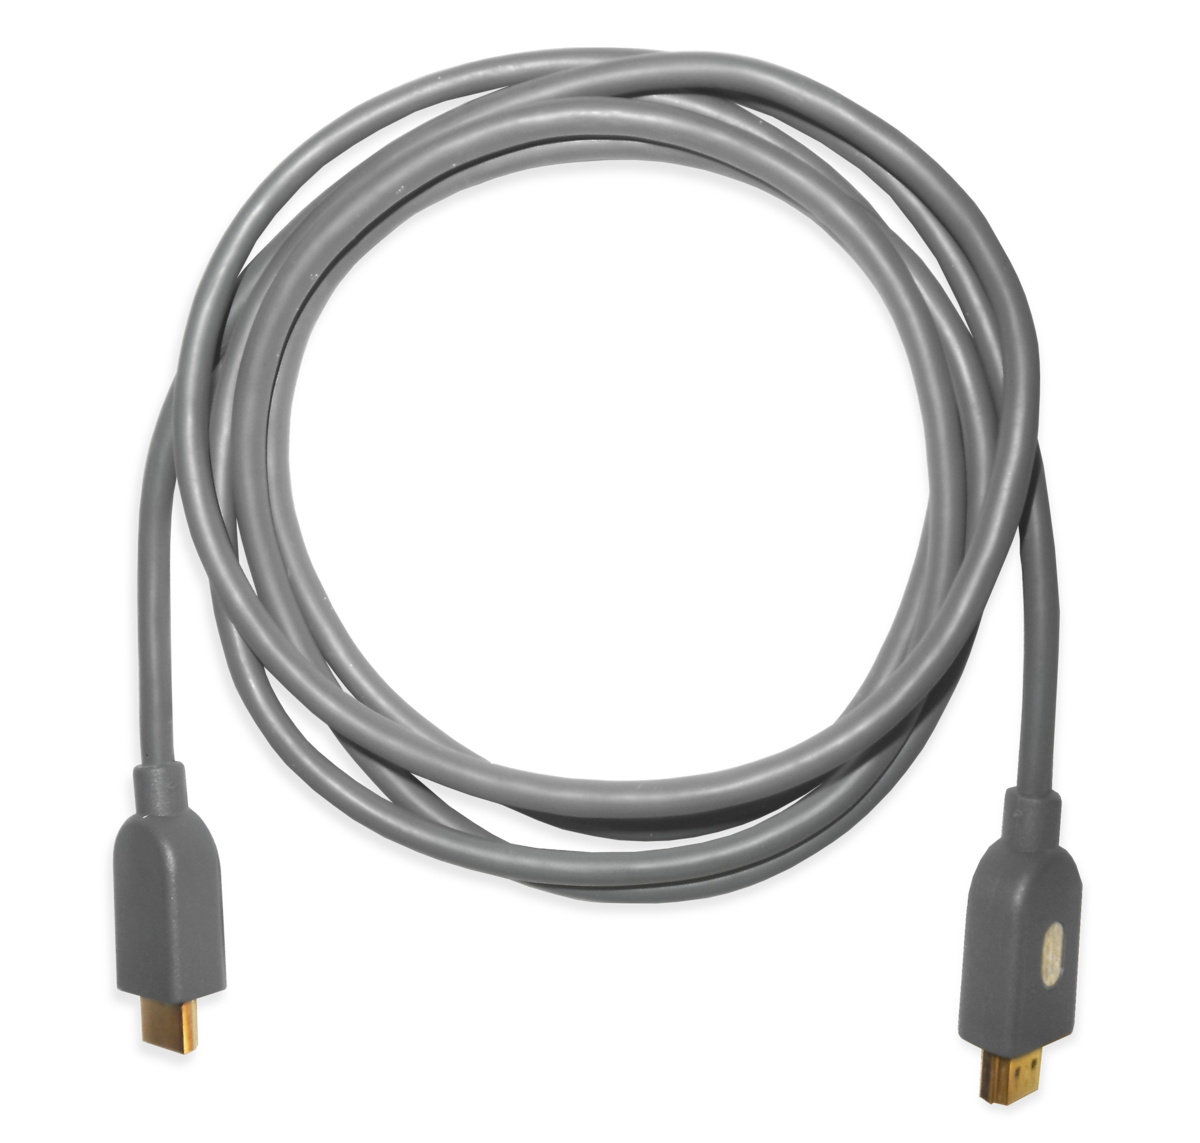 Hdmi Cable For Iphone S To Tv